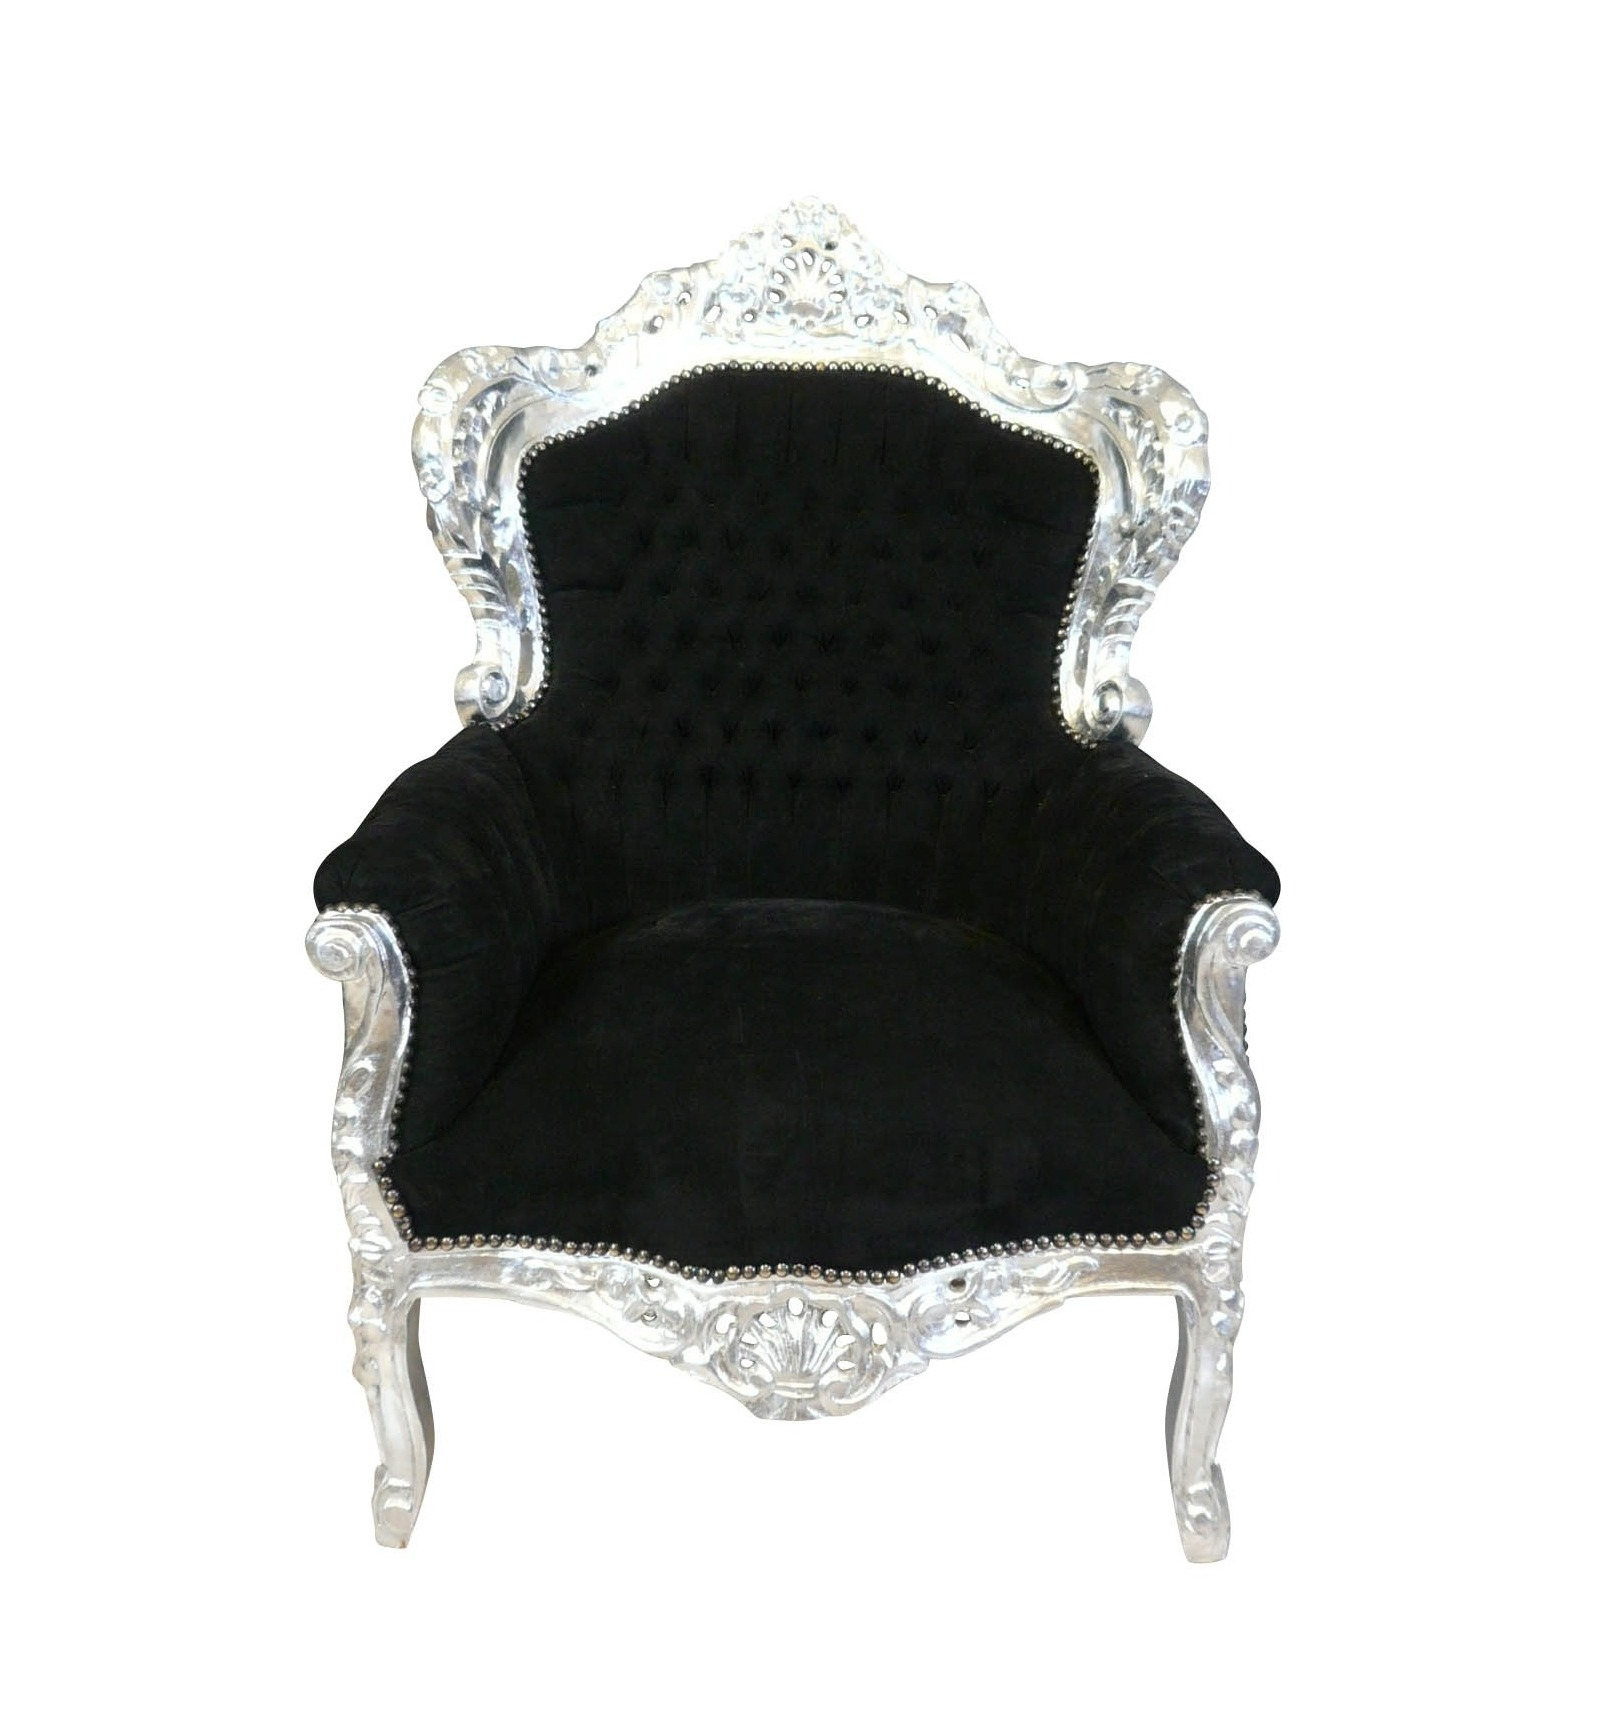 fauteuil baroque royal noir et argent chaise pouf et. Black Bedroom Furniture Sets. Home Design Ideas